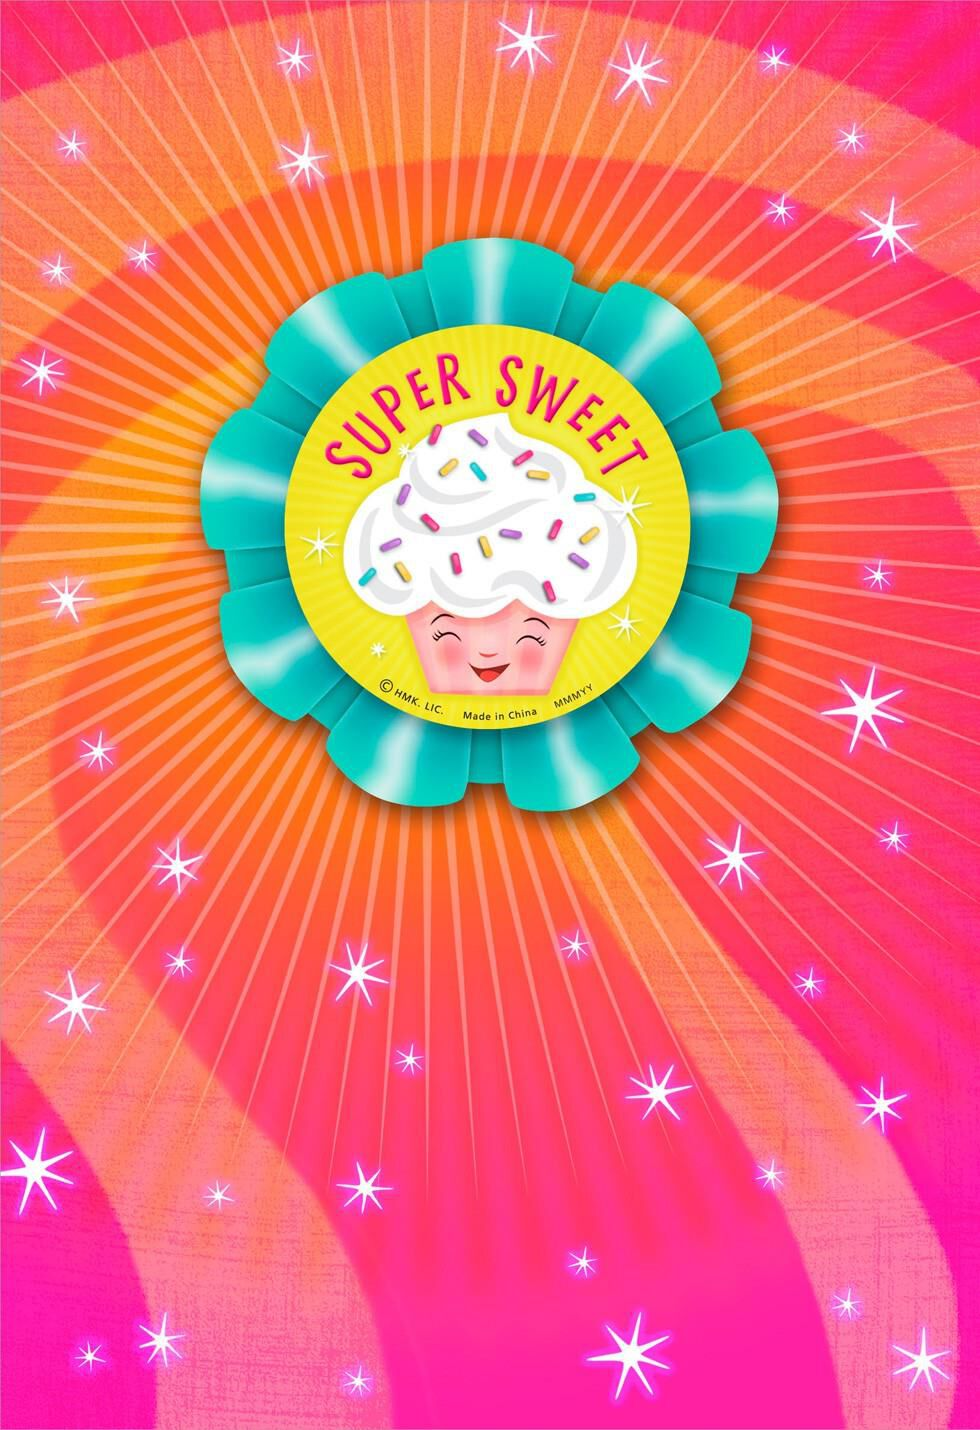 Super Sweet Cupcake Birthday Card With Pin On Button